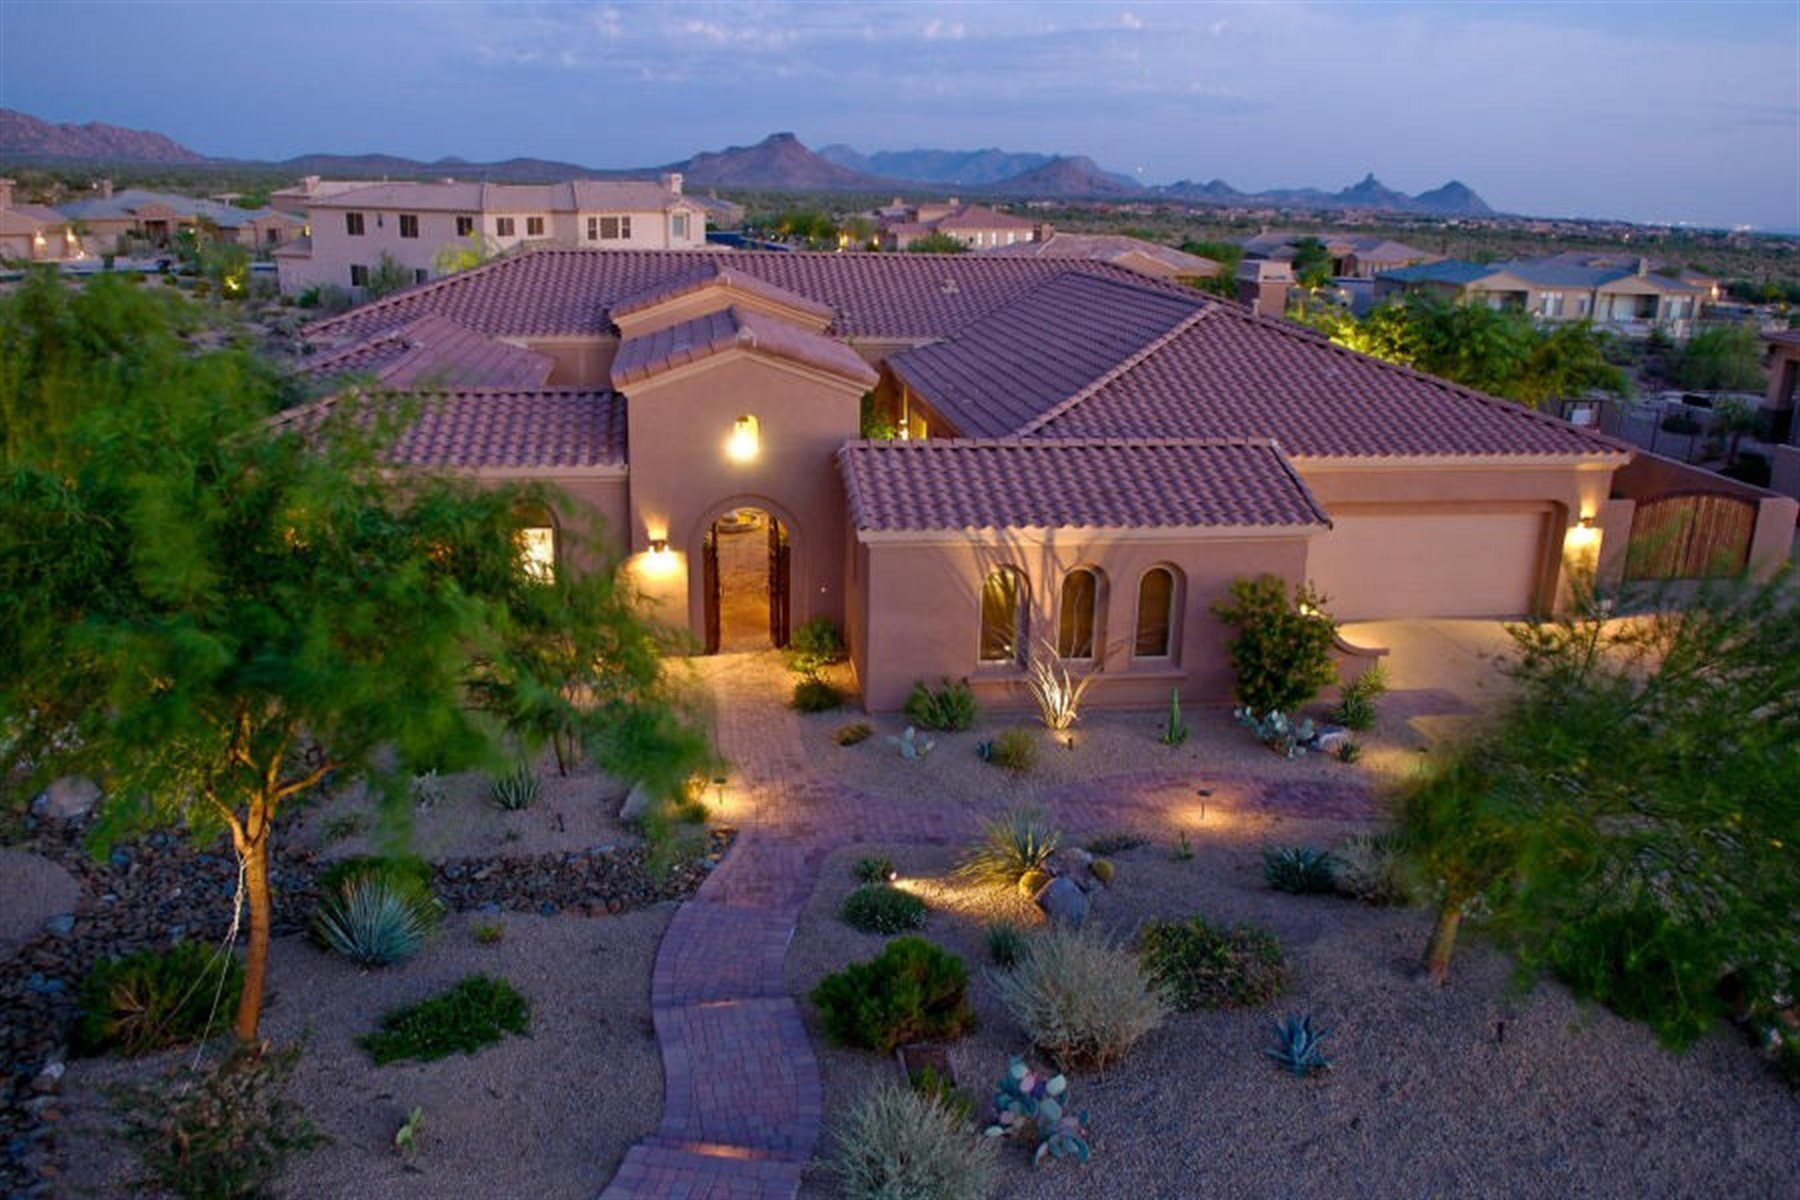 Maison unifamiliale pour l Vente à Stunning North Scottsdale Home With Exquisite Finishes 9795 E Granite Peak Trail Scottsdale, Arizona 85262 États-Unis